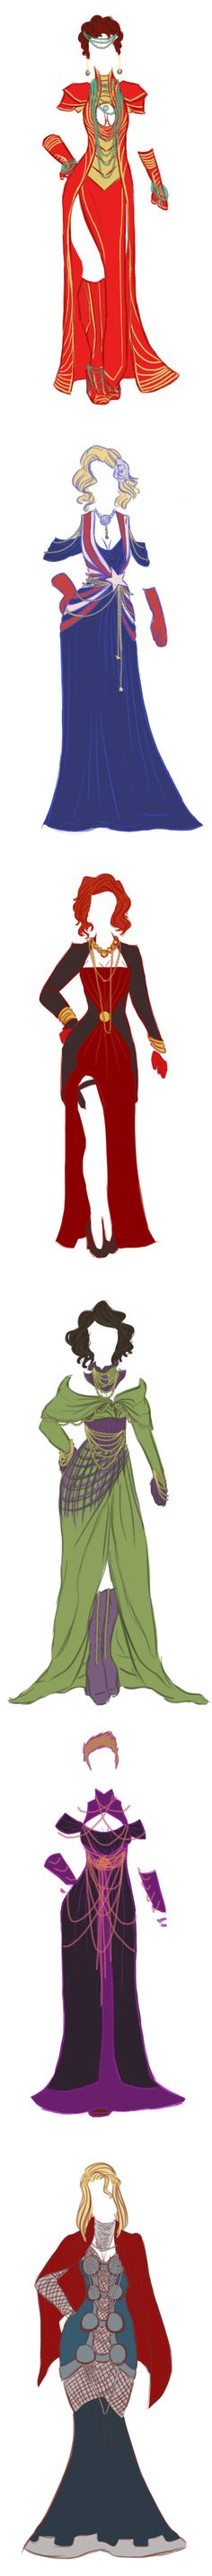 Marvel Avengers Evening Gown Designs